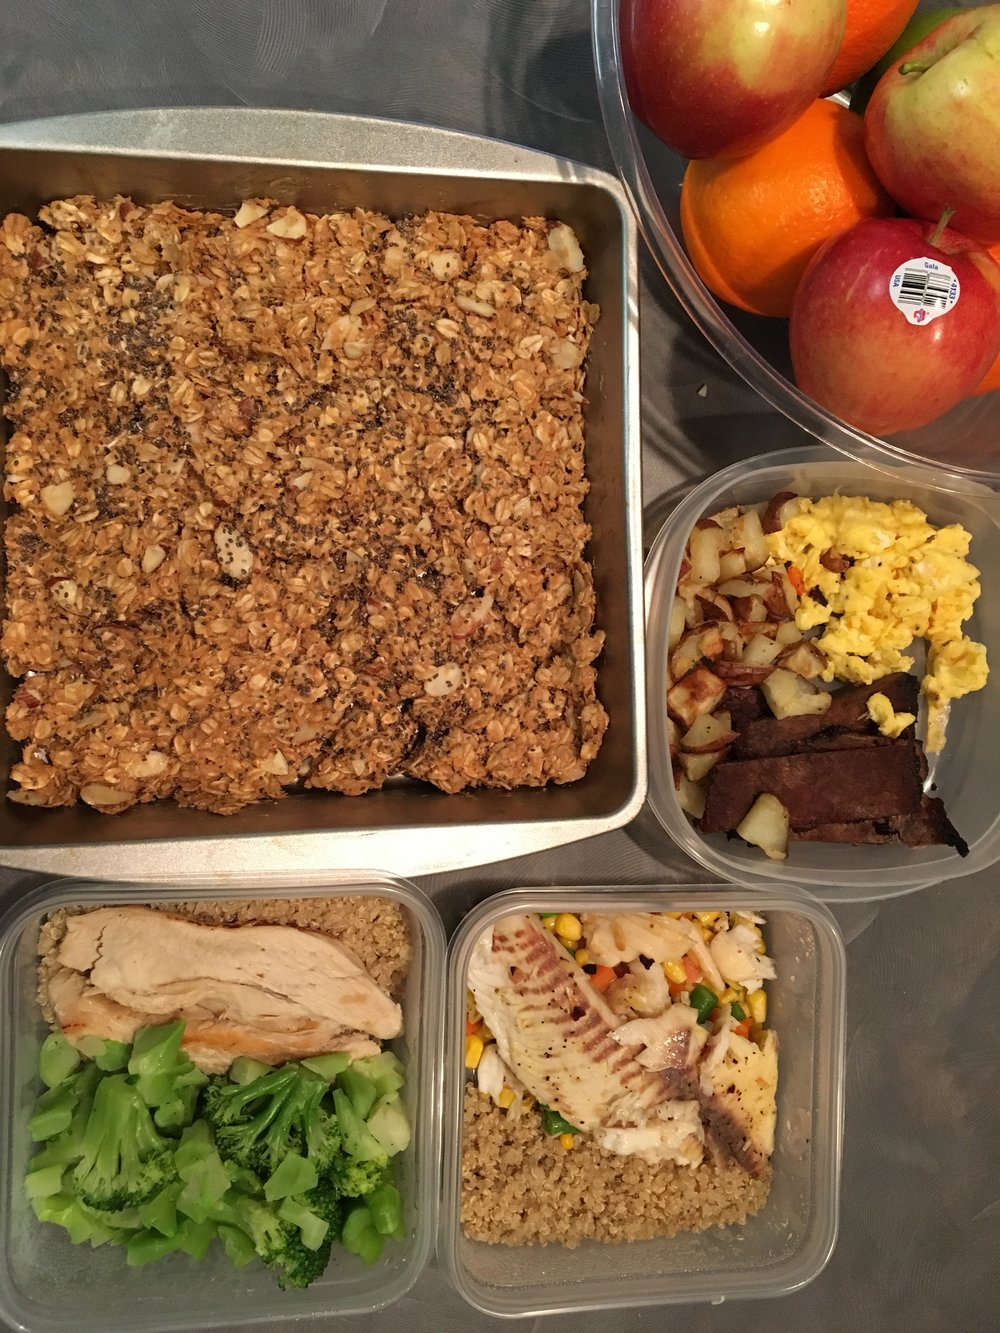 Here is a sample of food that I enjoyed for a week.  I eventually cut the pan of granola into bars, and froze half of the meals.